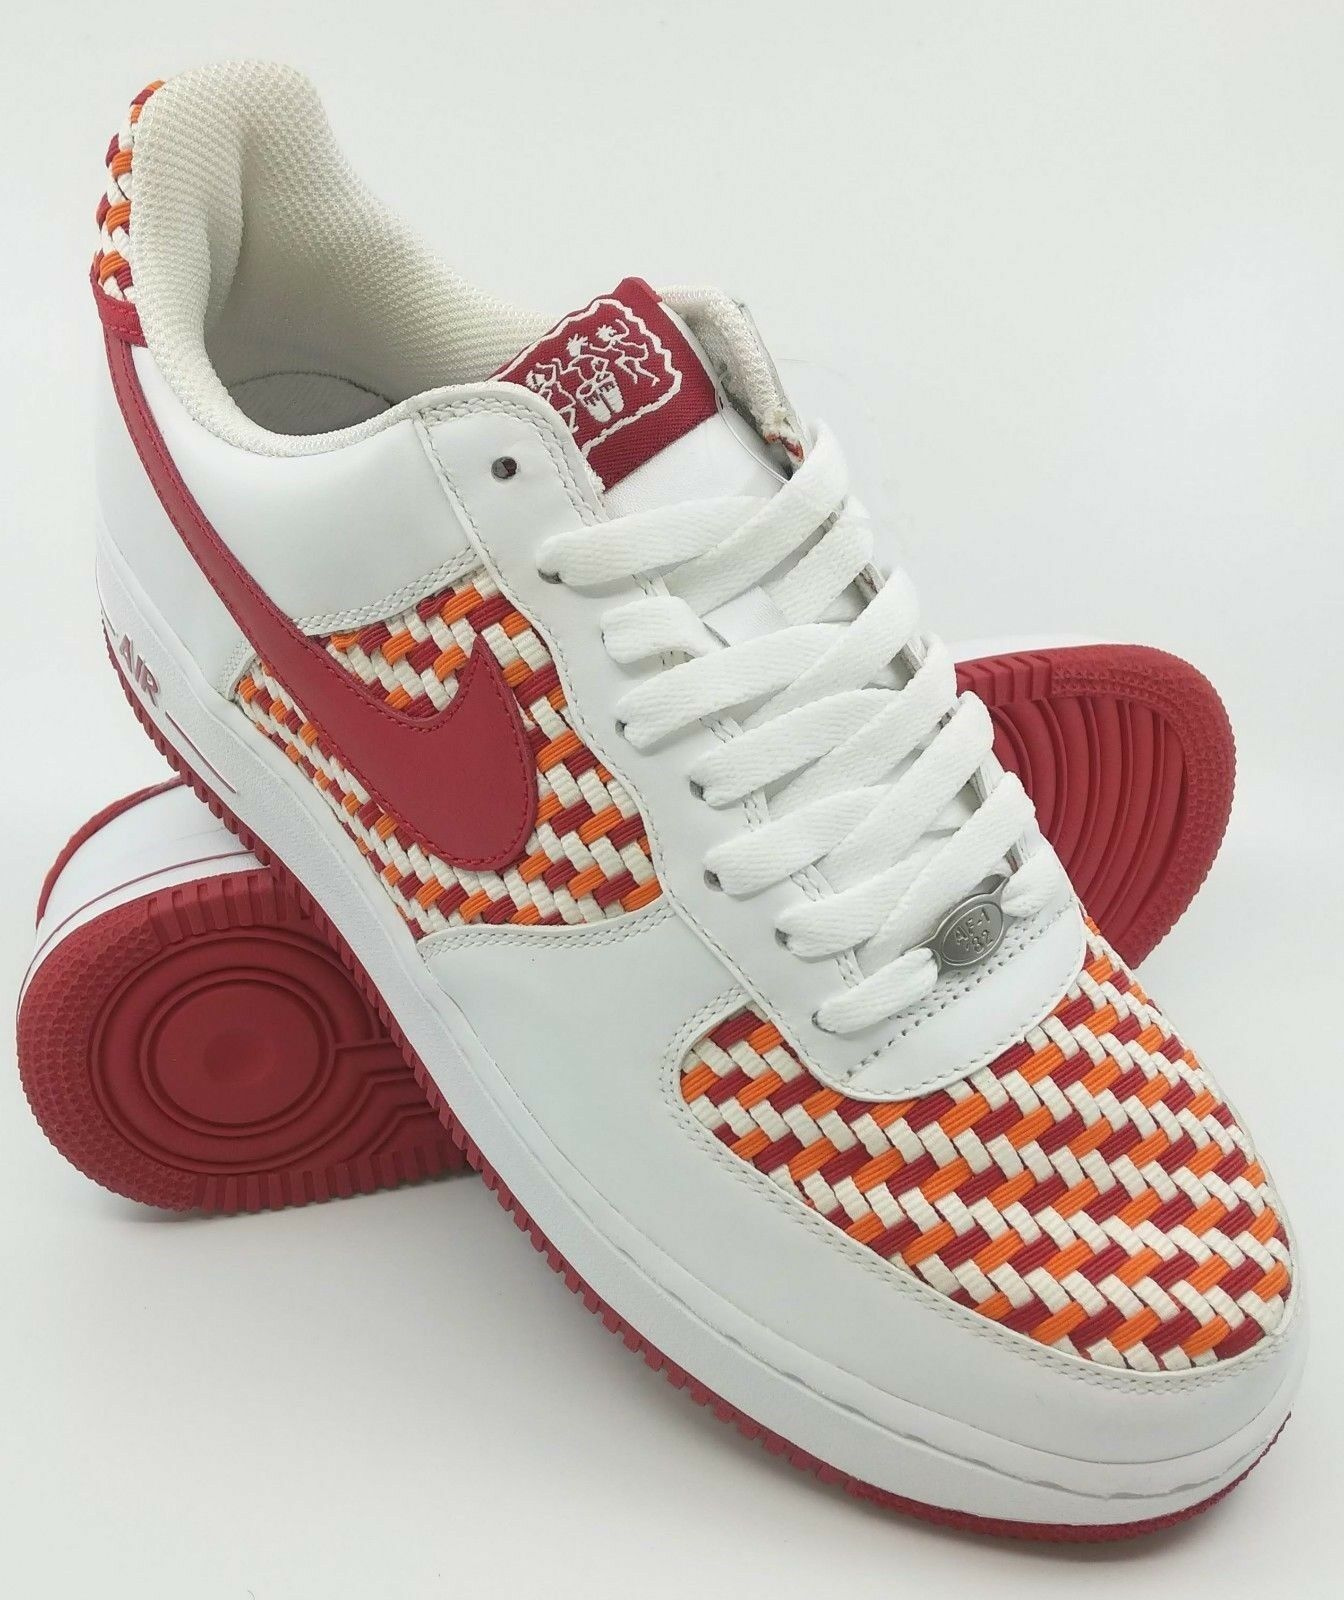 2005 2005 2005 NIKE AIR FORCE 1 LOW PM ISLAND PACK WOVEN FRUITY PEBBLES SAMPLE 9 US RARE ec3661